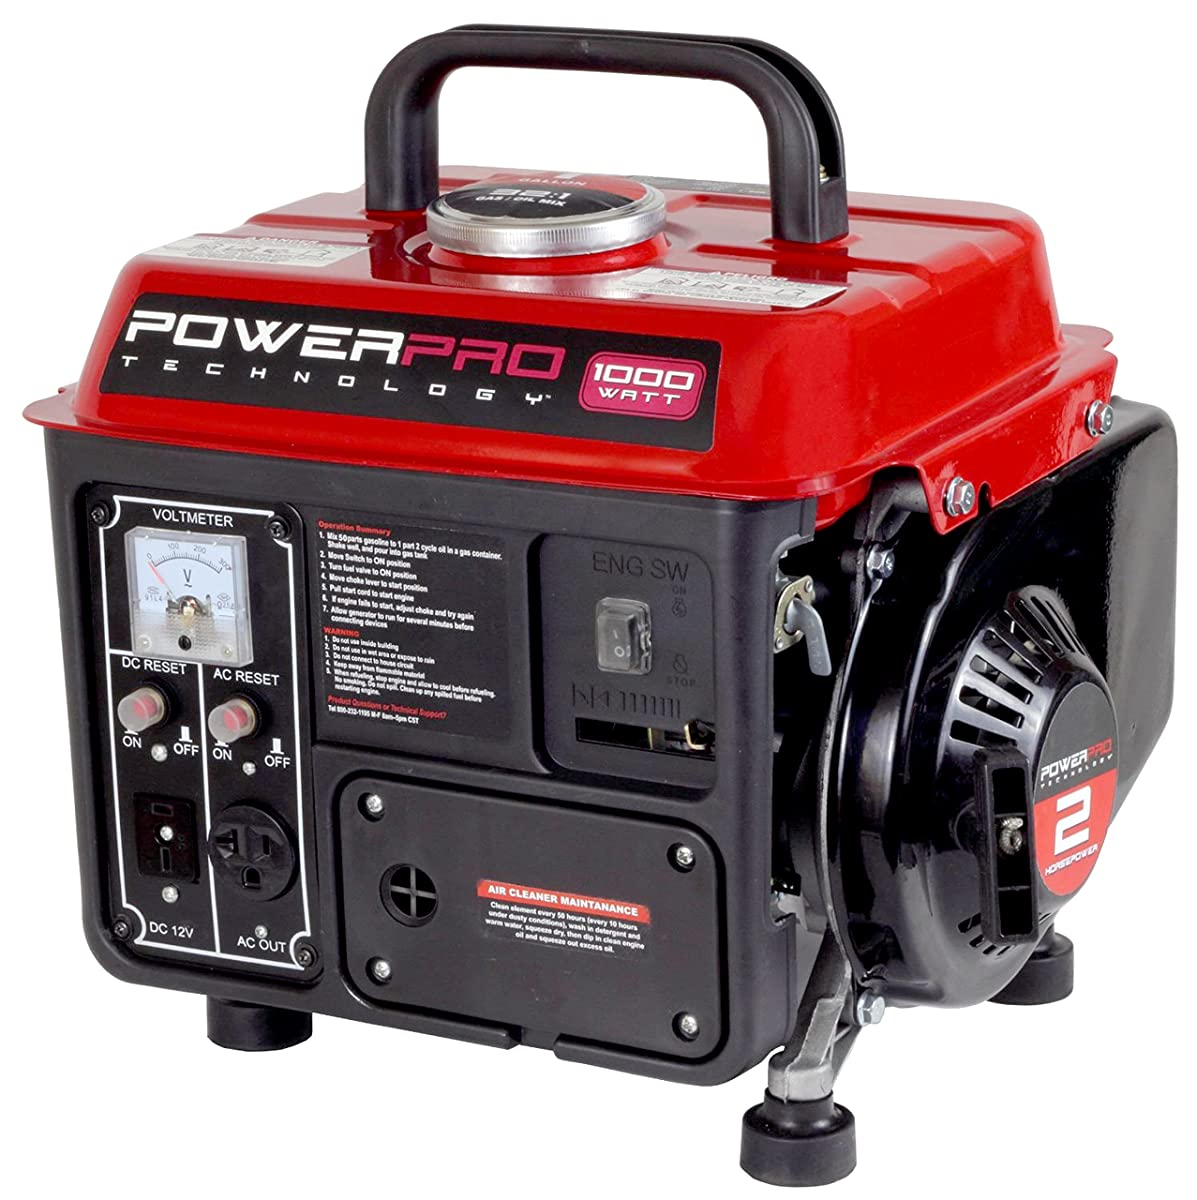 PowerPro 56101, 900 Running Watts/1000 Starting Watts, Gas Powered Portable Generator